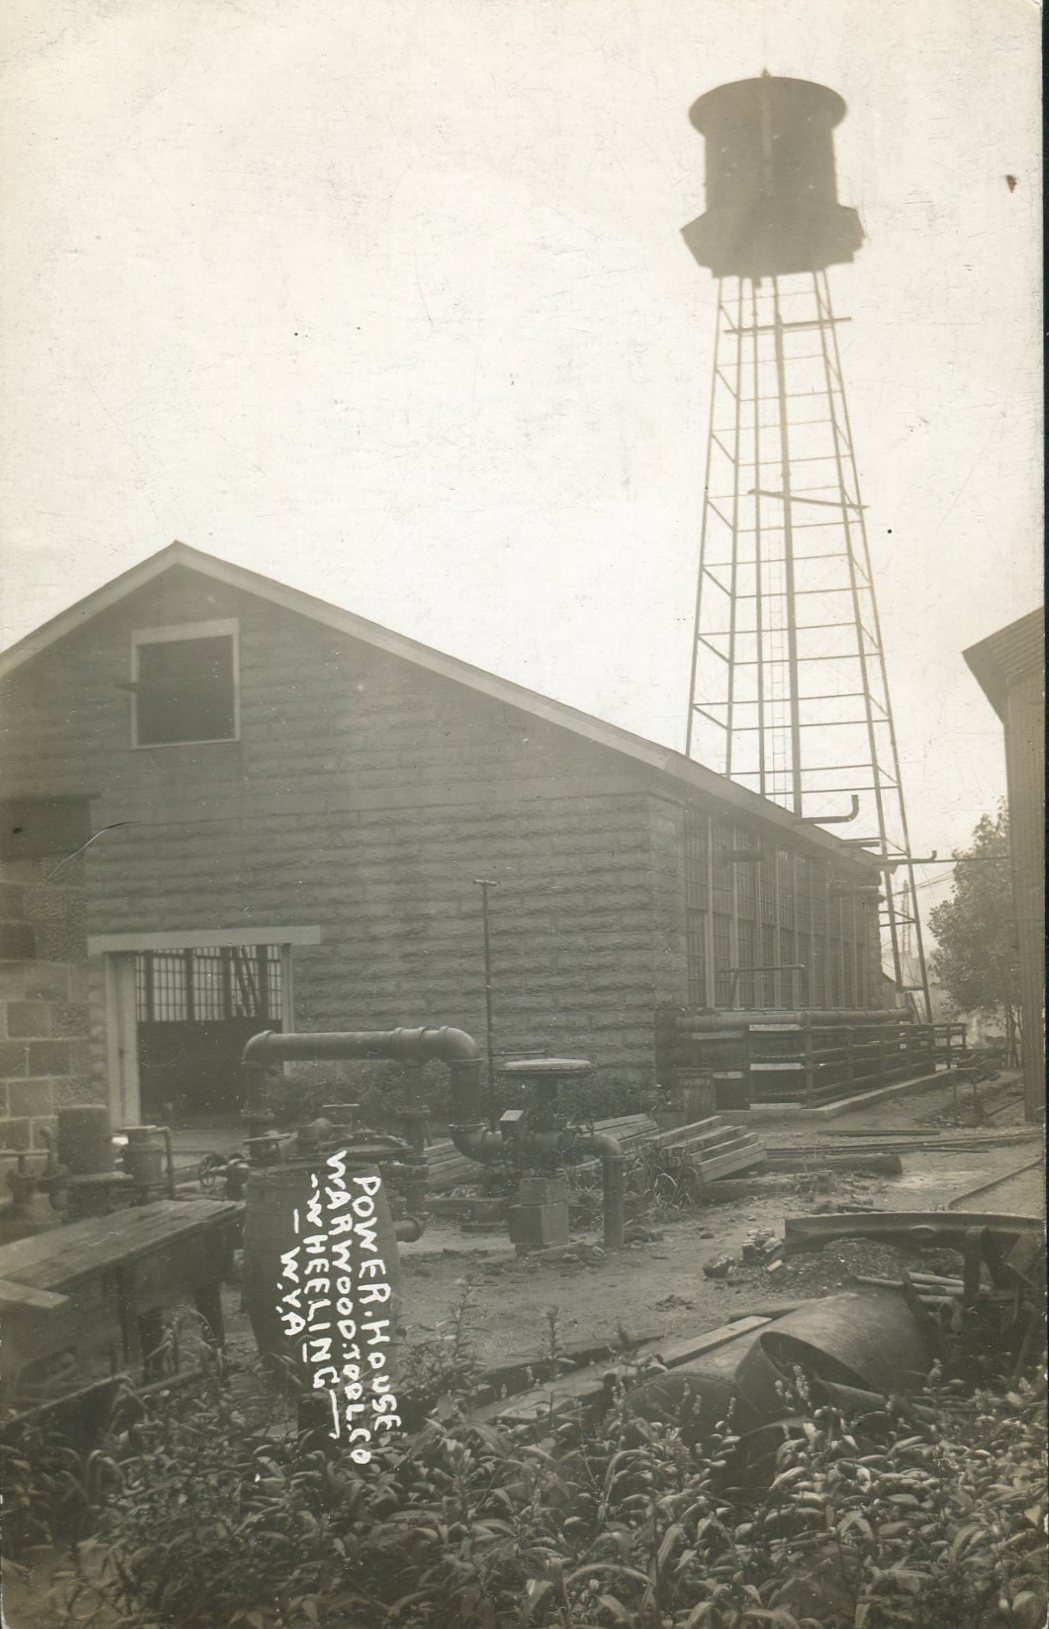 Warwood Tool Company, undated, photo courtesy of Sandra Mauck.